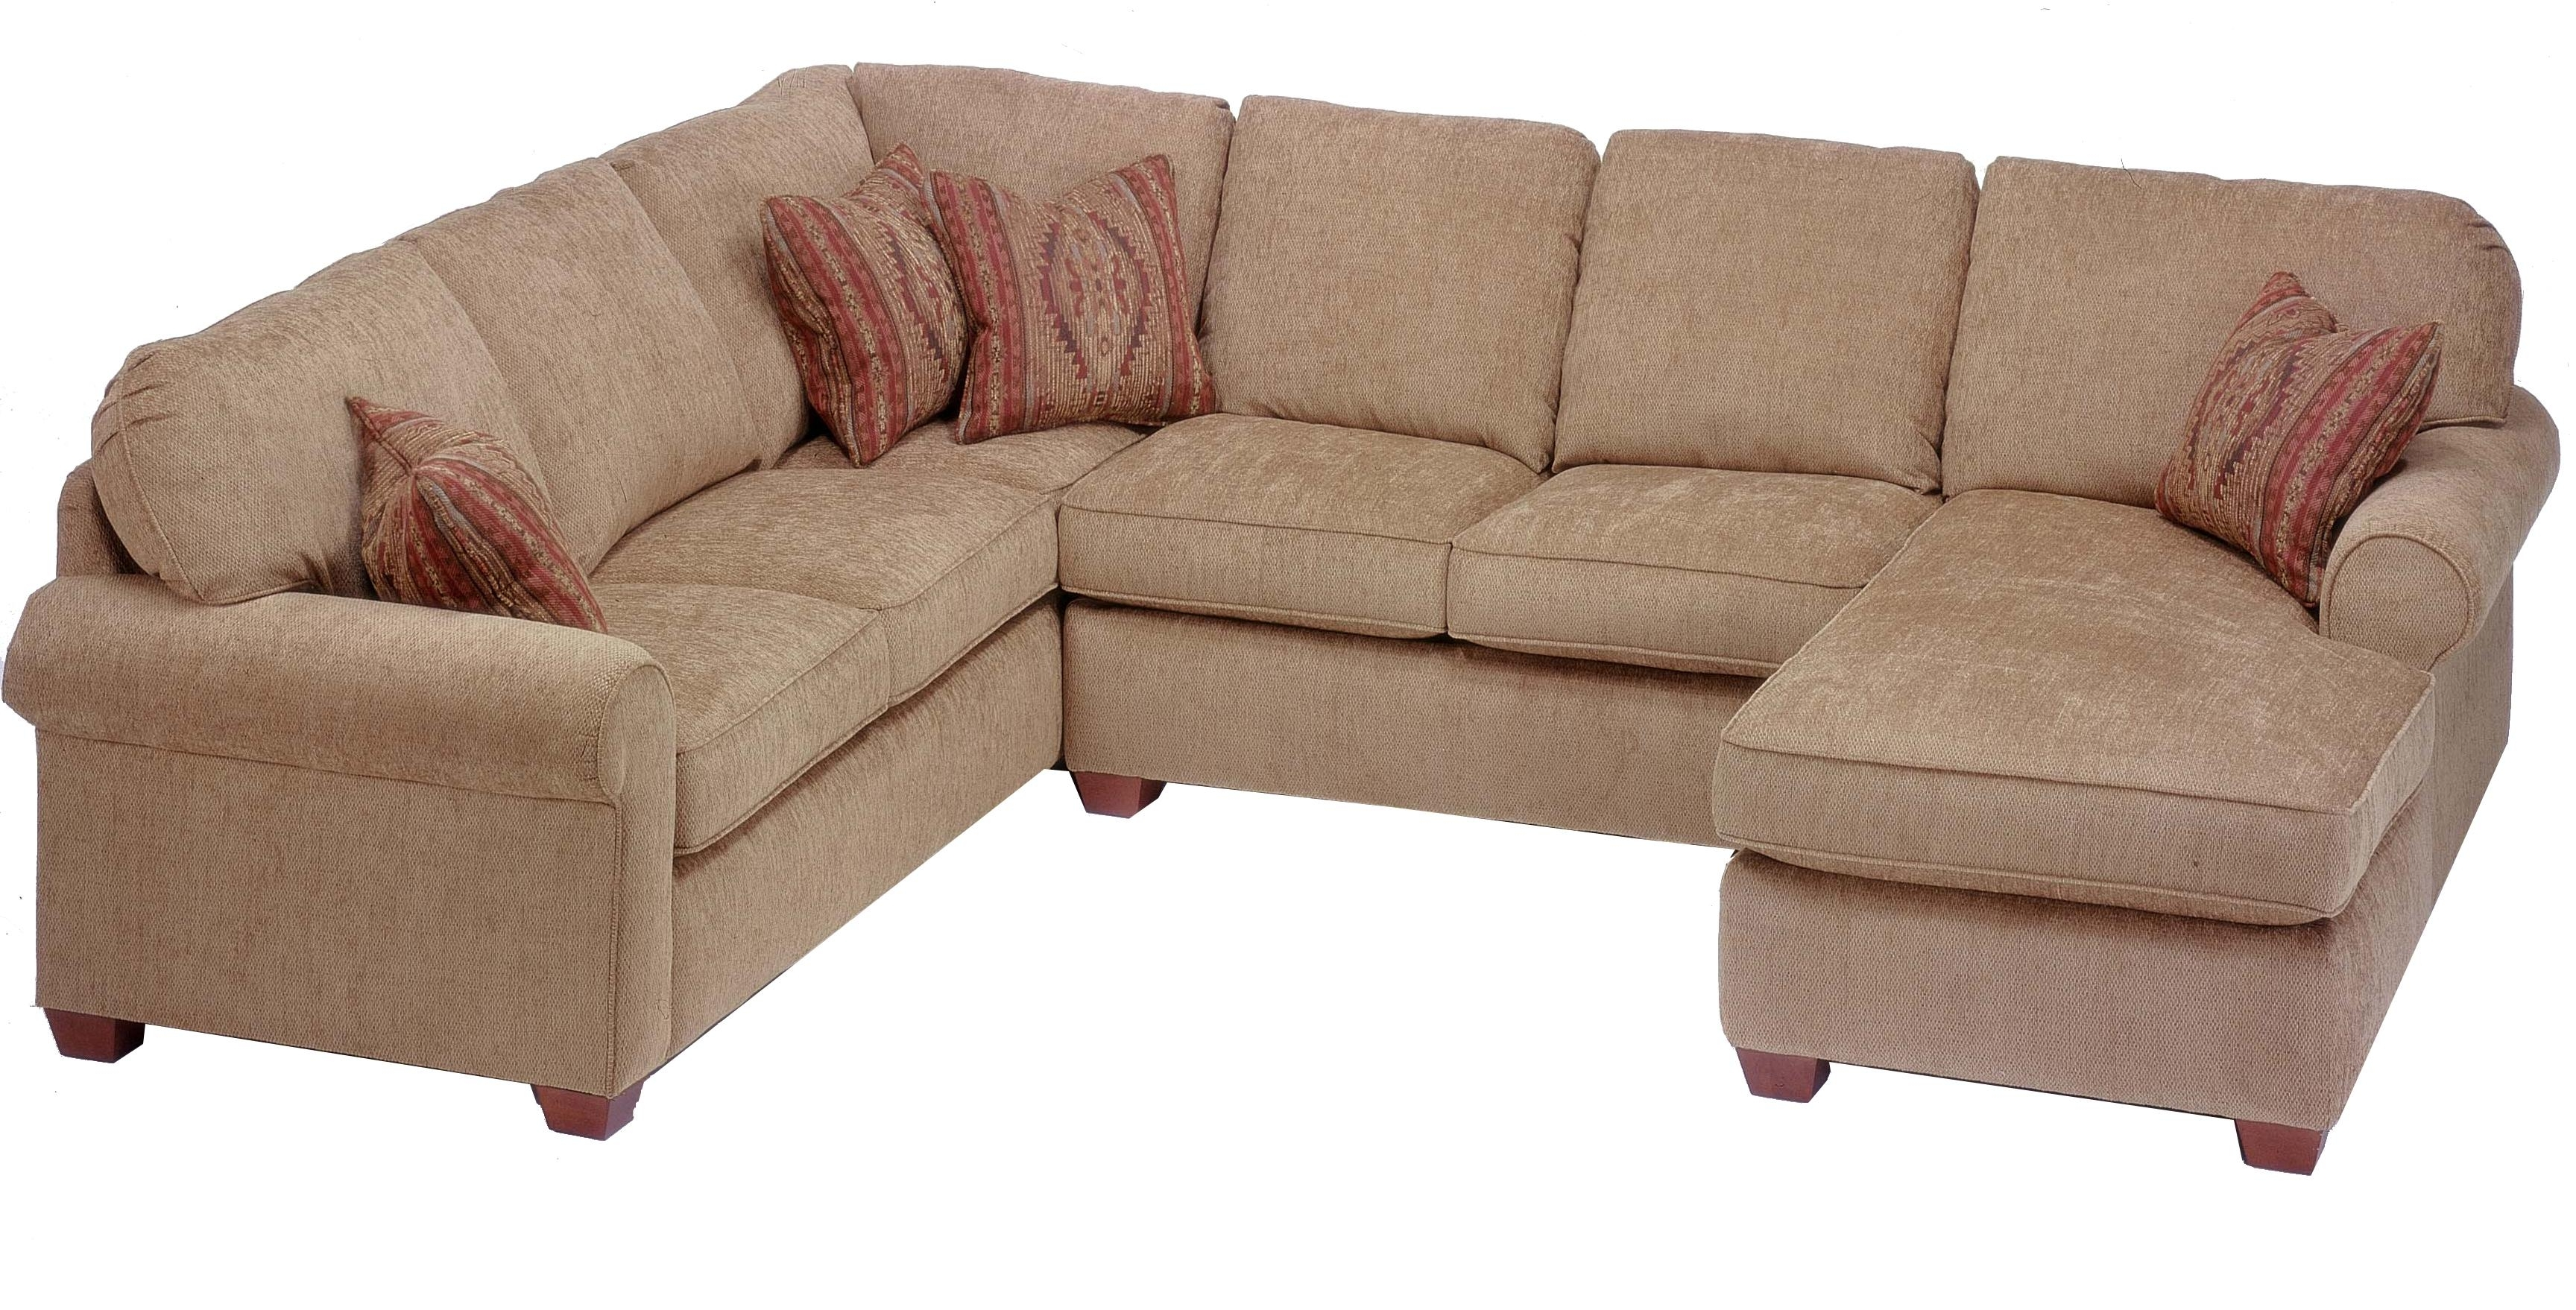 Little Rock Ar Sectional Sofas Throughout Well Known Flexsteel Thornton 3 Piece Sectional With Chaise – Ahfa – Sofa (View 19 of 20)